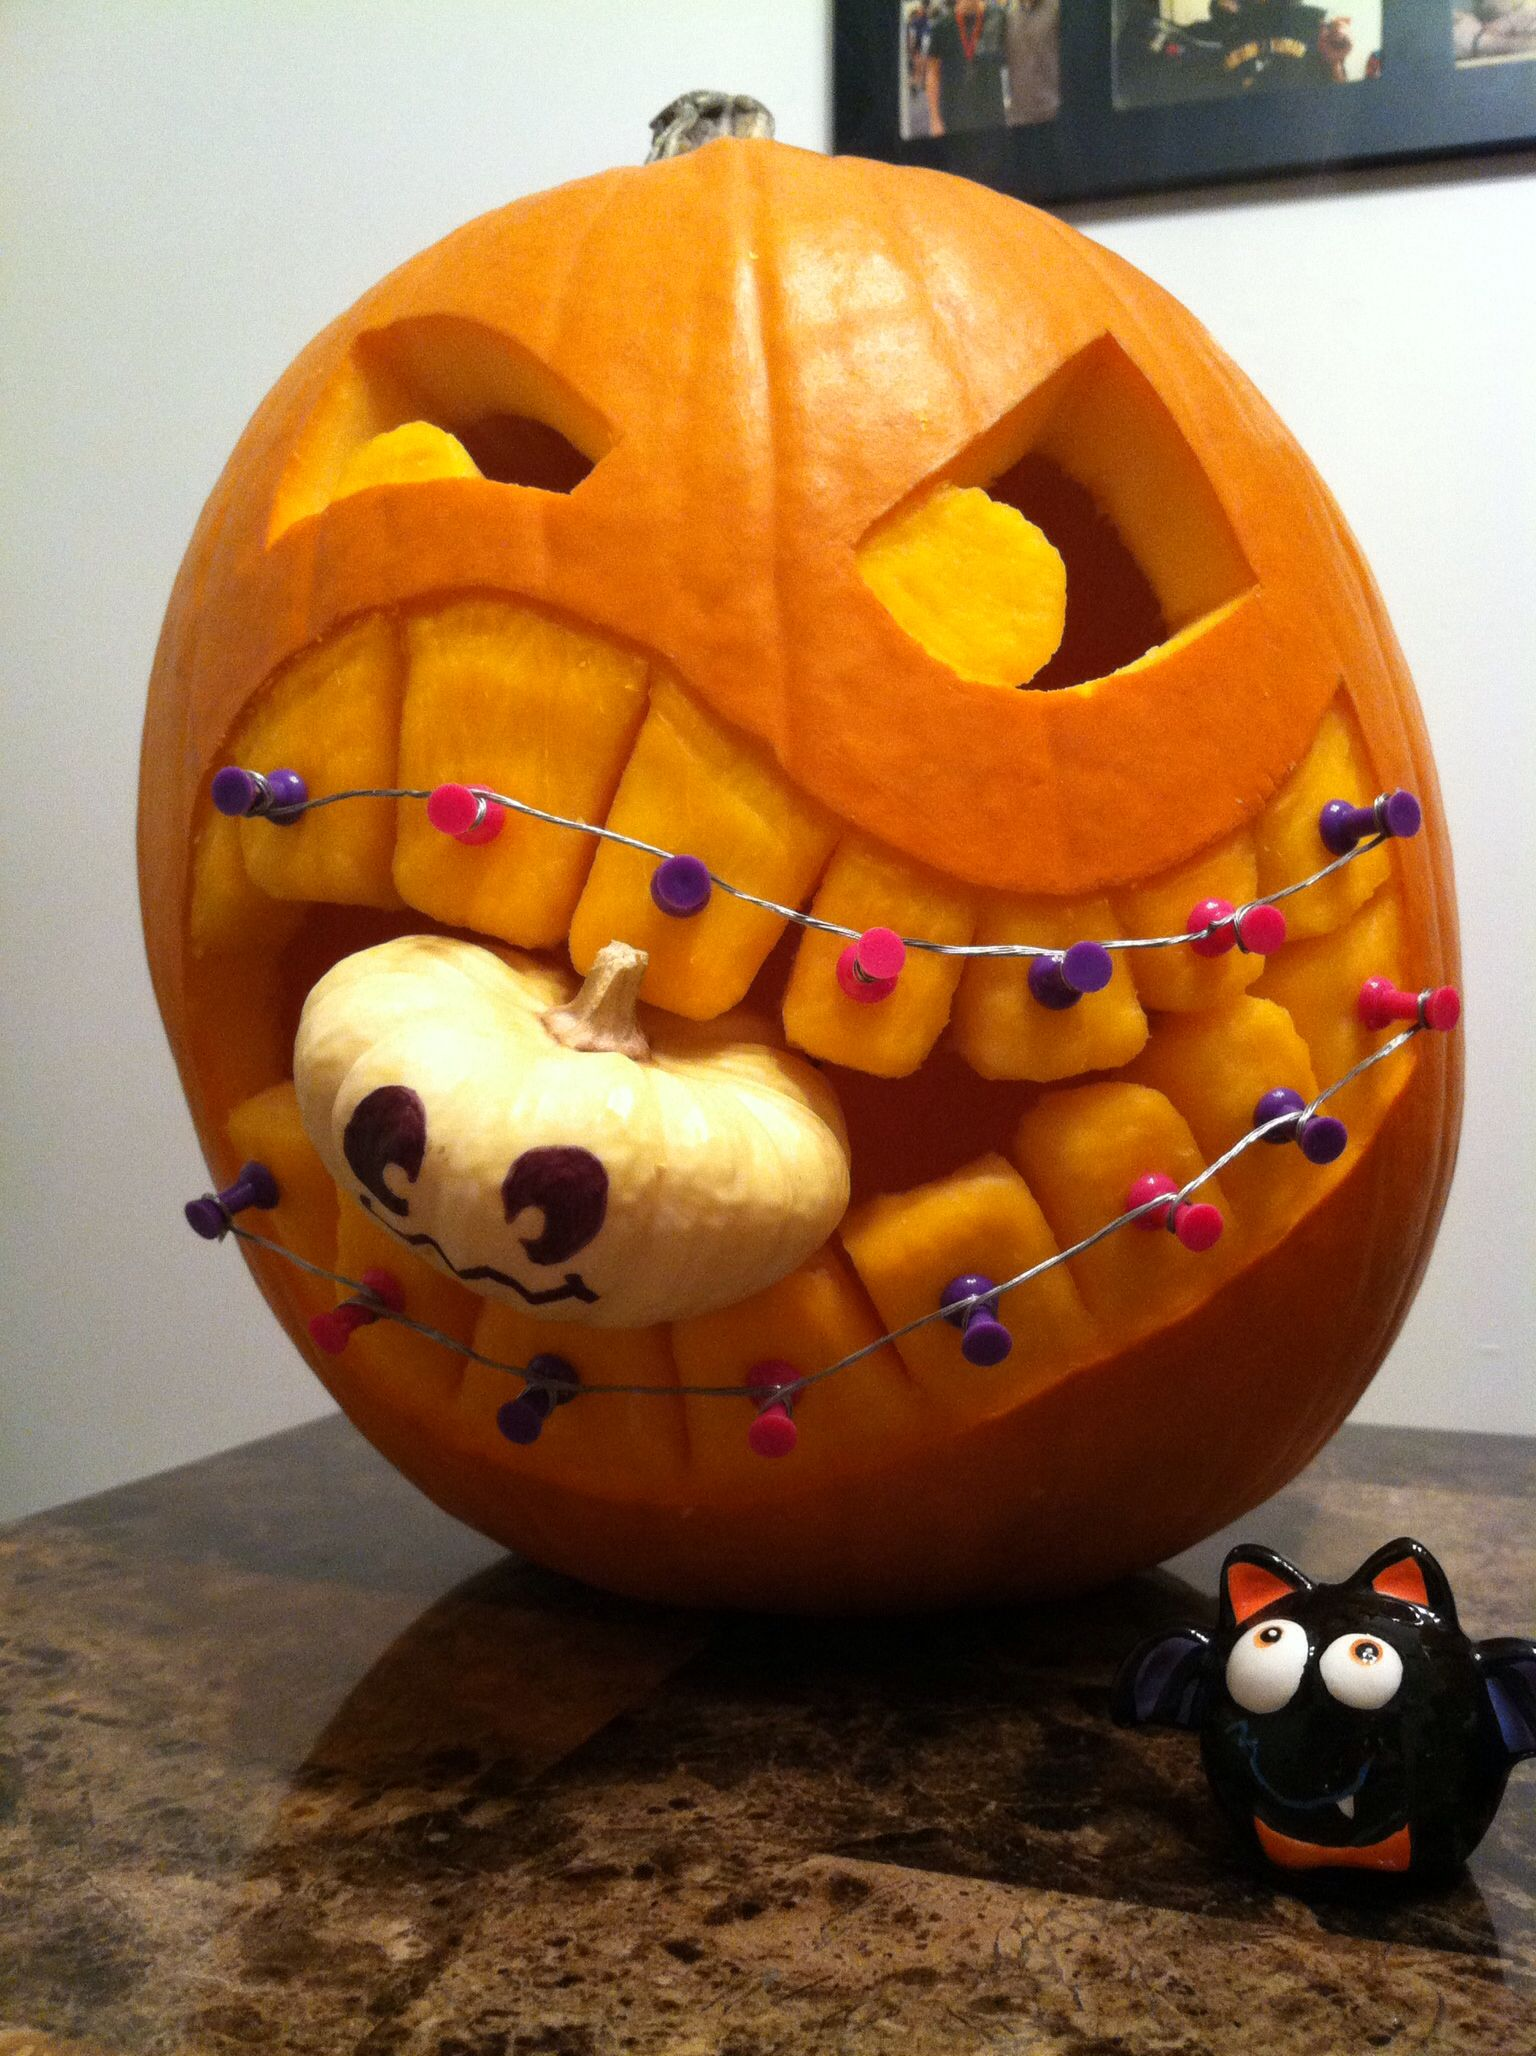 Pin By Nicole Cupit On Dental Hygiene Pumpkin Carving Pumpkin Halloween Decorations Pumpkin